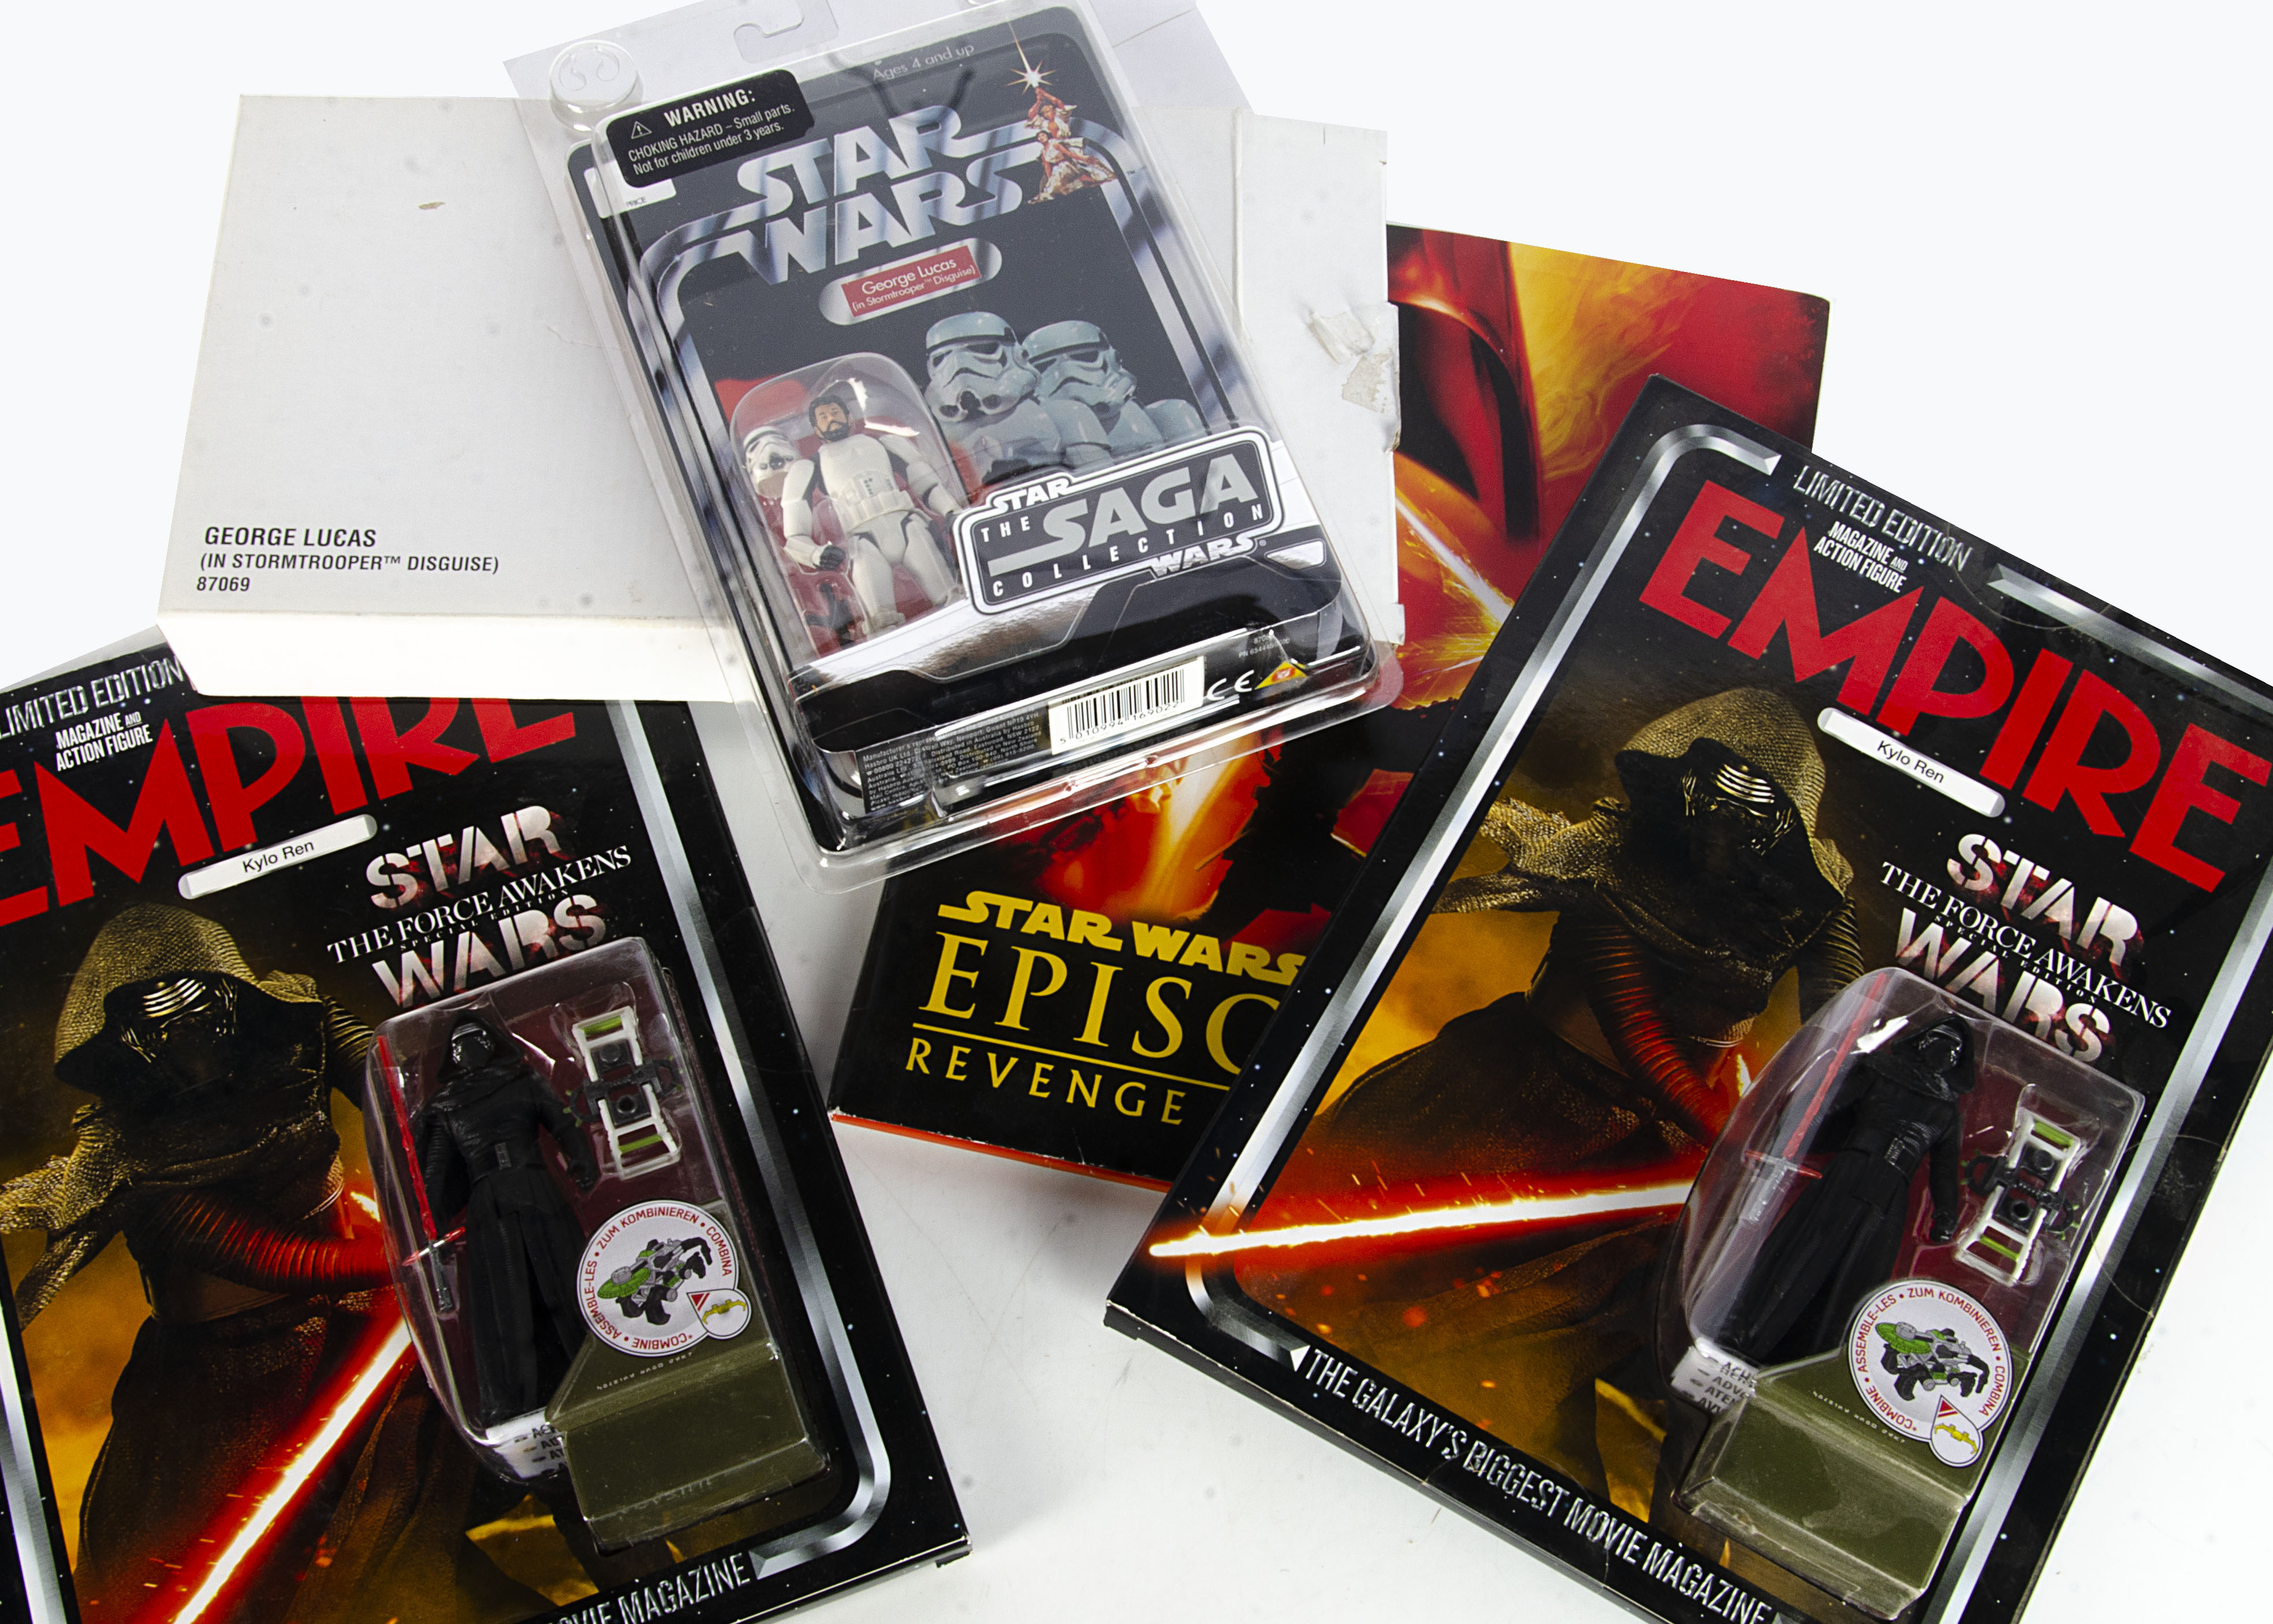 Star Wars / Saga Collection plus, The Saga Collection - George Lucas (in Stormtrooper Disguise) with